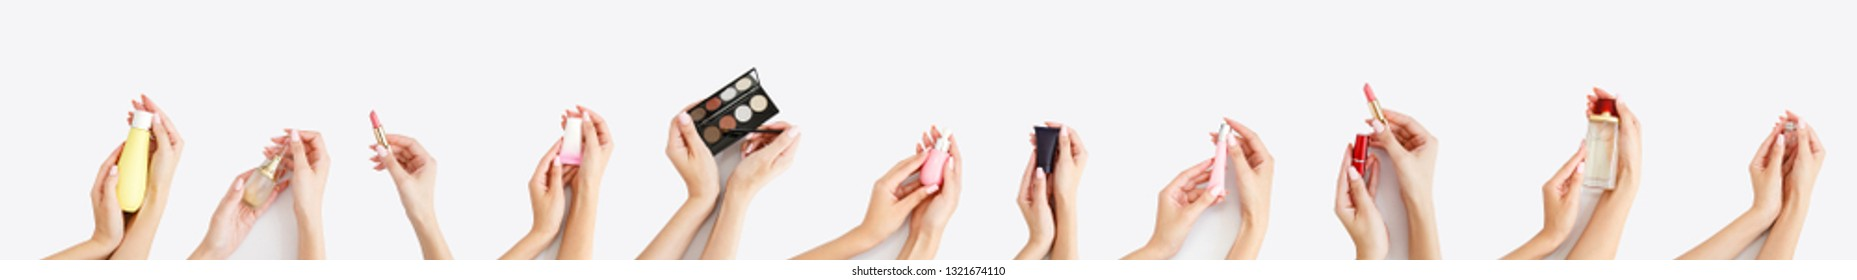 Line from several female hands with makeup products in them. Copy space. Daily care of beauty. Face care product. Banner of woman`s cosmetics on white background. Girl`s morning skin care. Make up